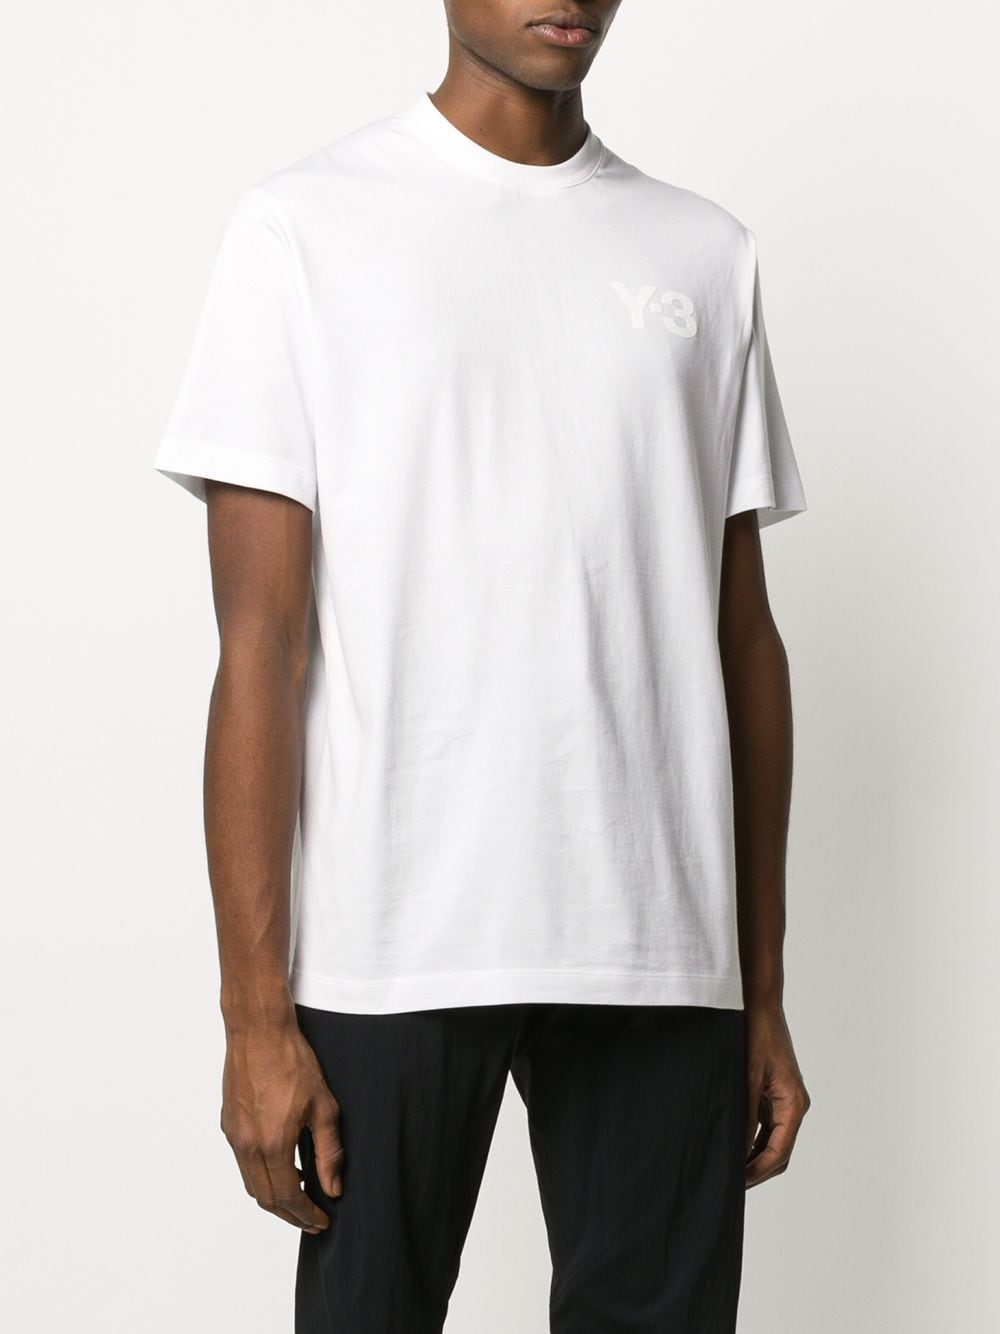 Picture of Adidas Y-3 | Regular Fit Short Sleeve T-Shirt